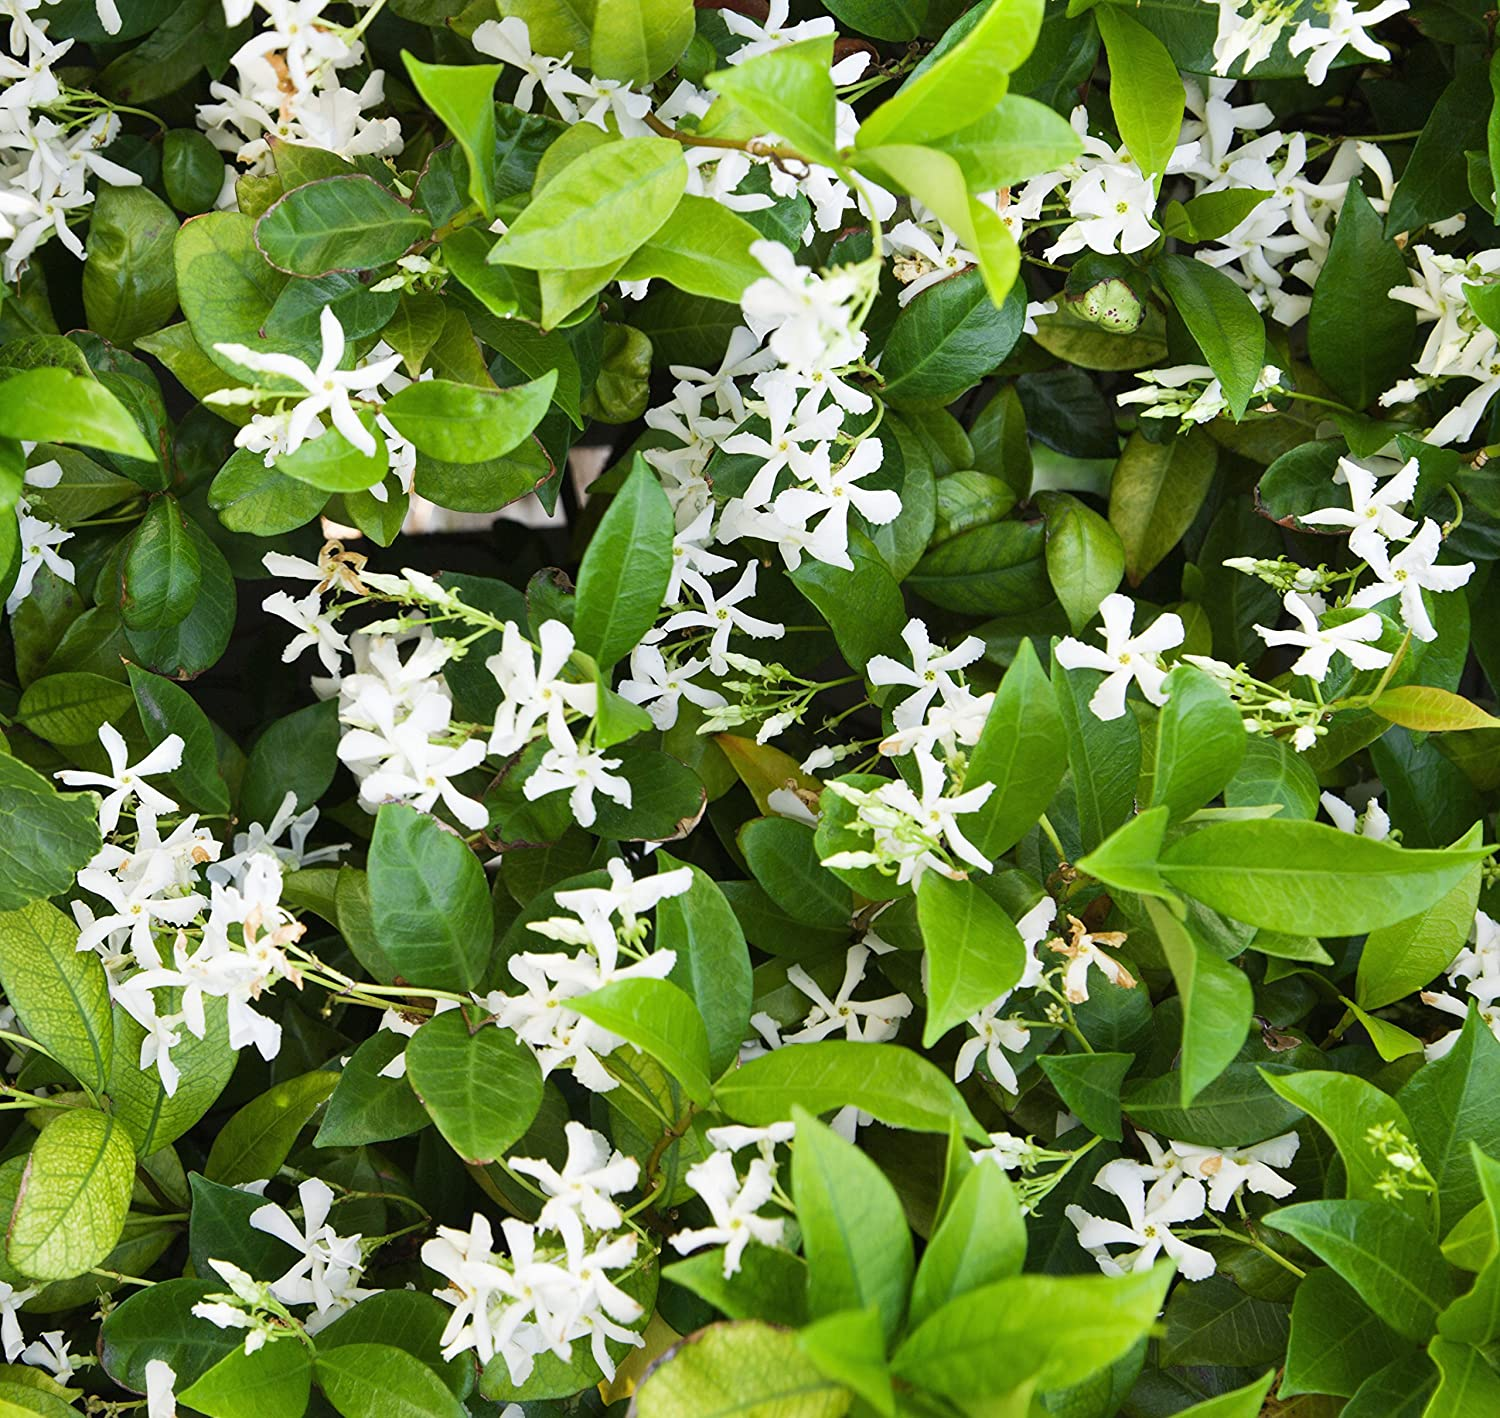 Amazon hardy jasmine jasminum officinale 1 plant in pot amazon hardy jasmine jasminum officinale 1 plant in pot deliciously fragrant ships from easy to grow tm garden outdoor izmirmasajfo